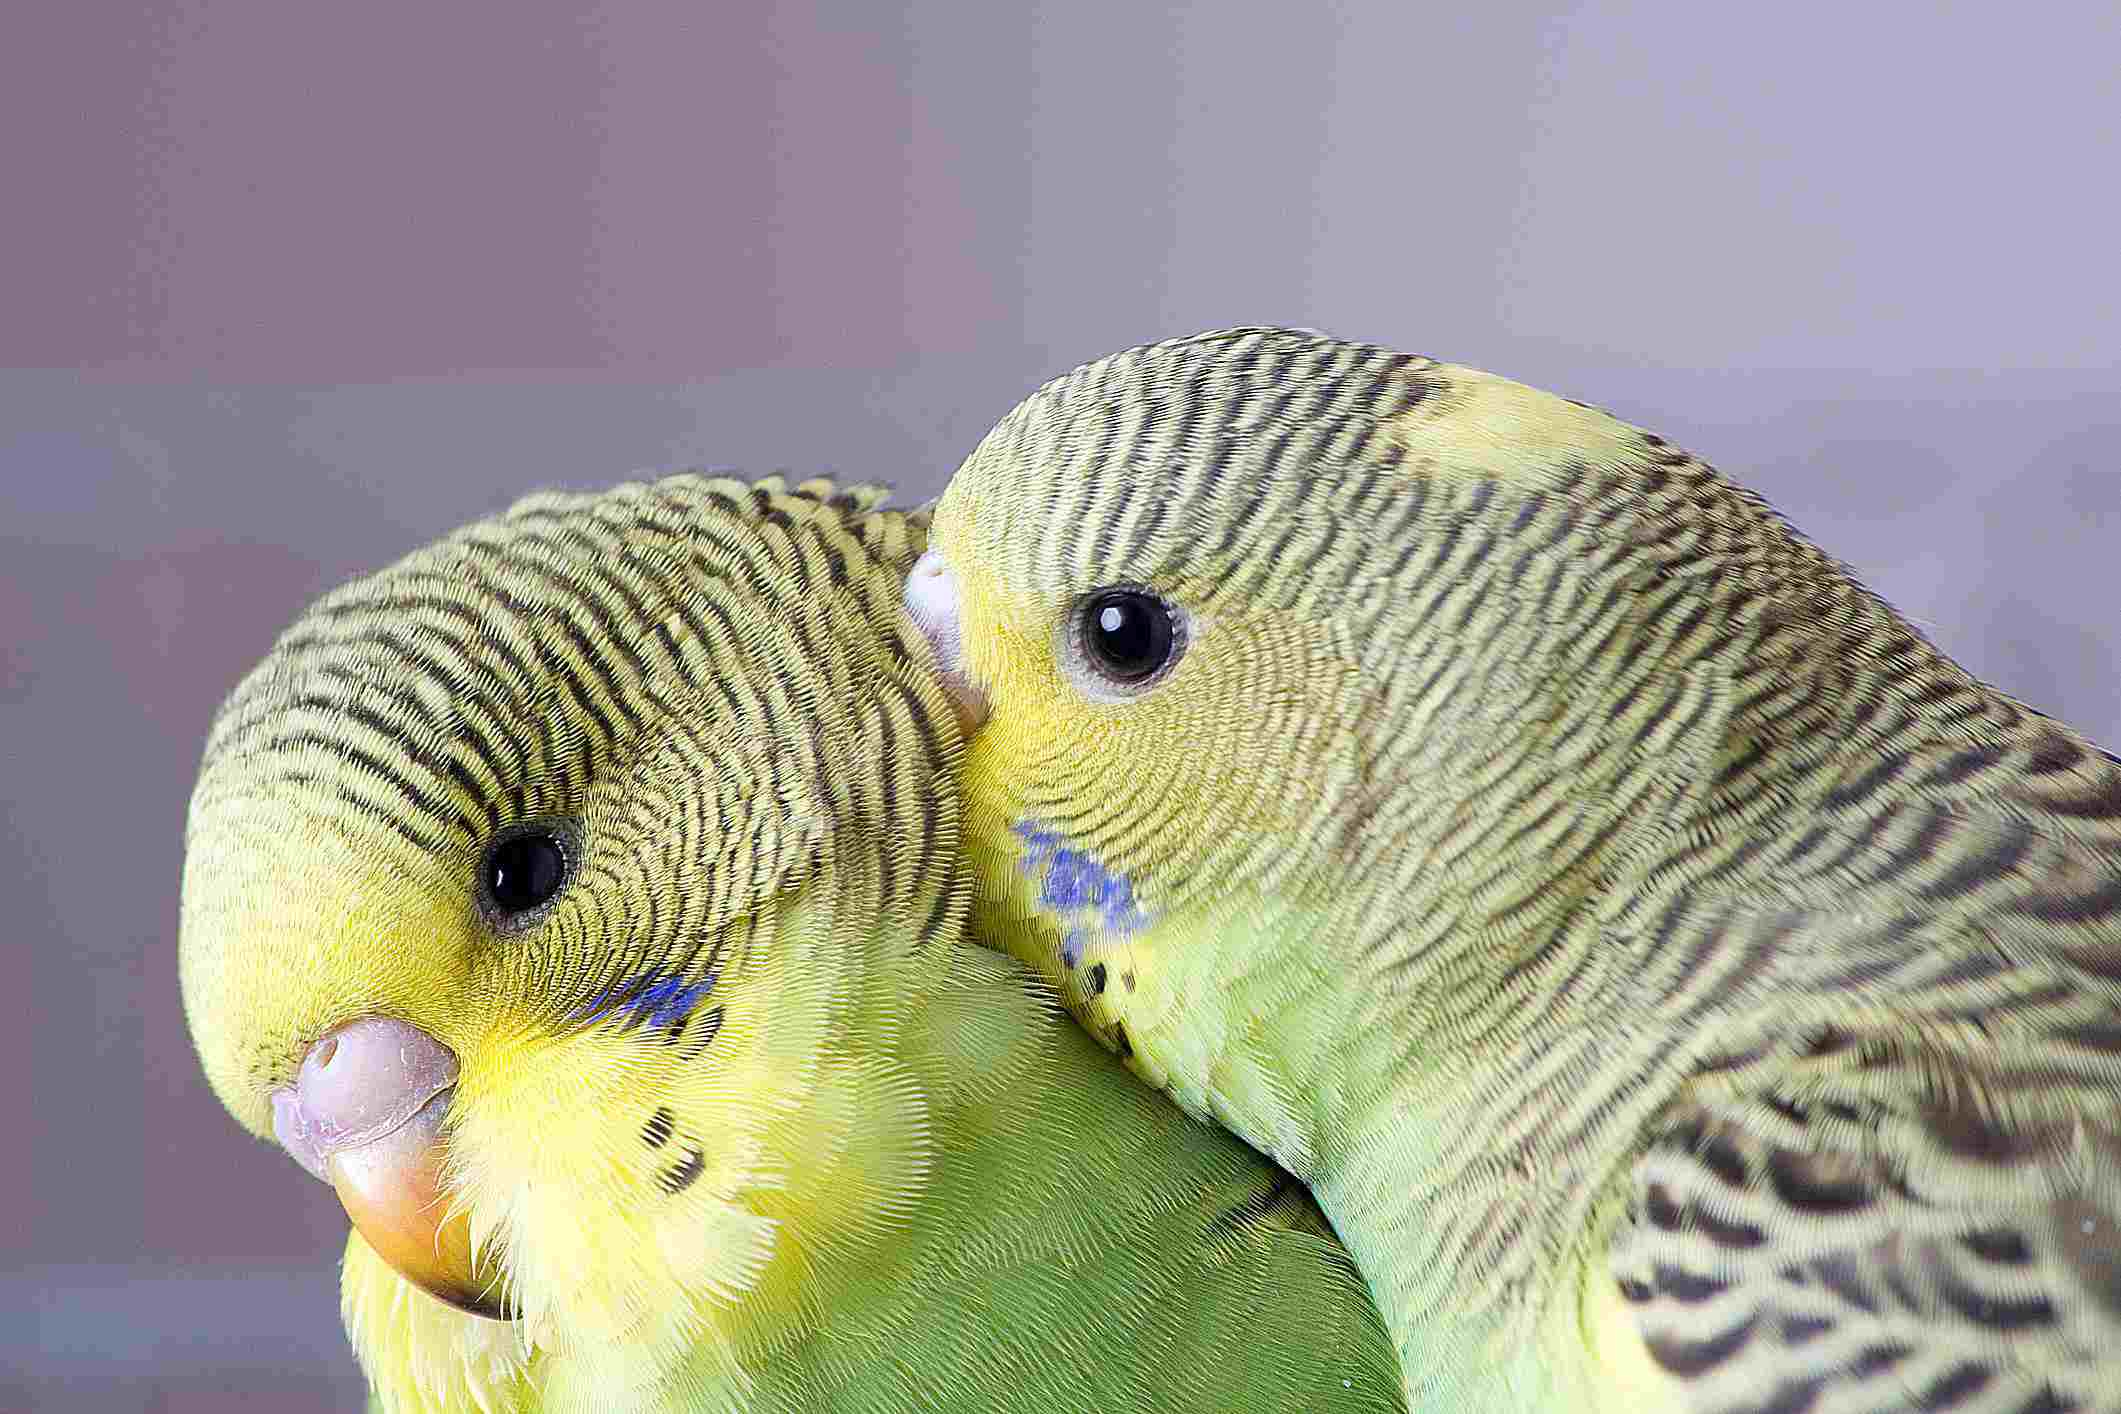 Two green budgies preening